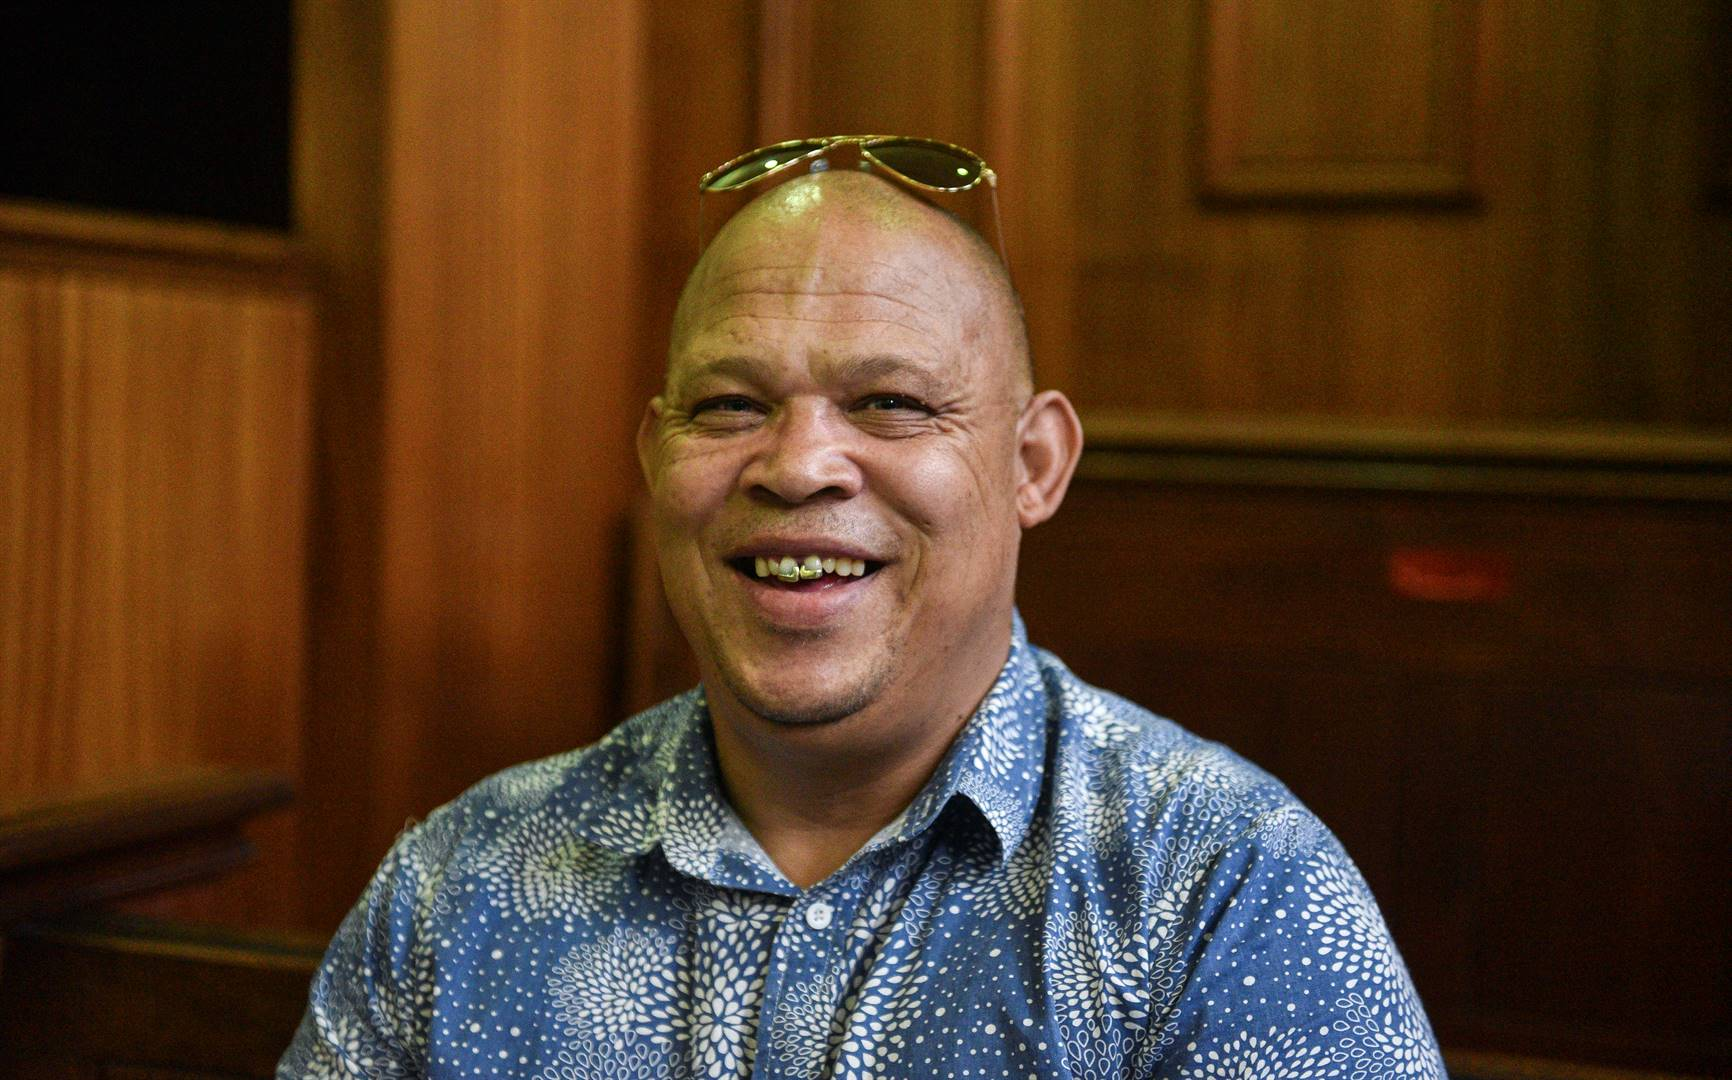 DA welcomes conviction against Ace Magashule's former bodyguard